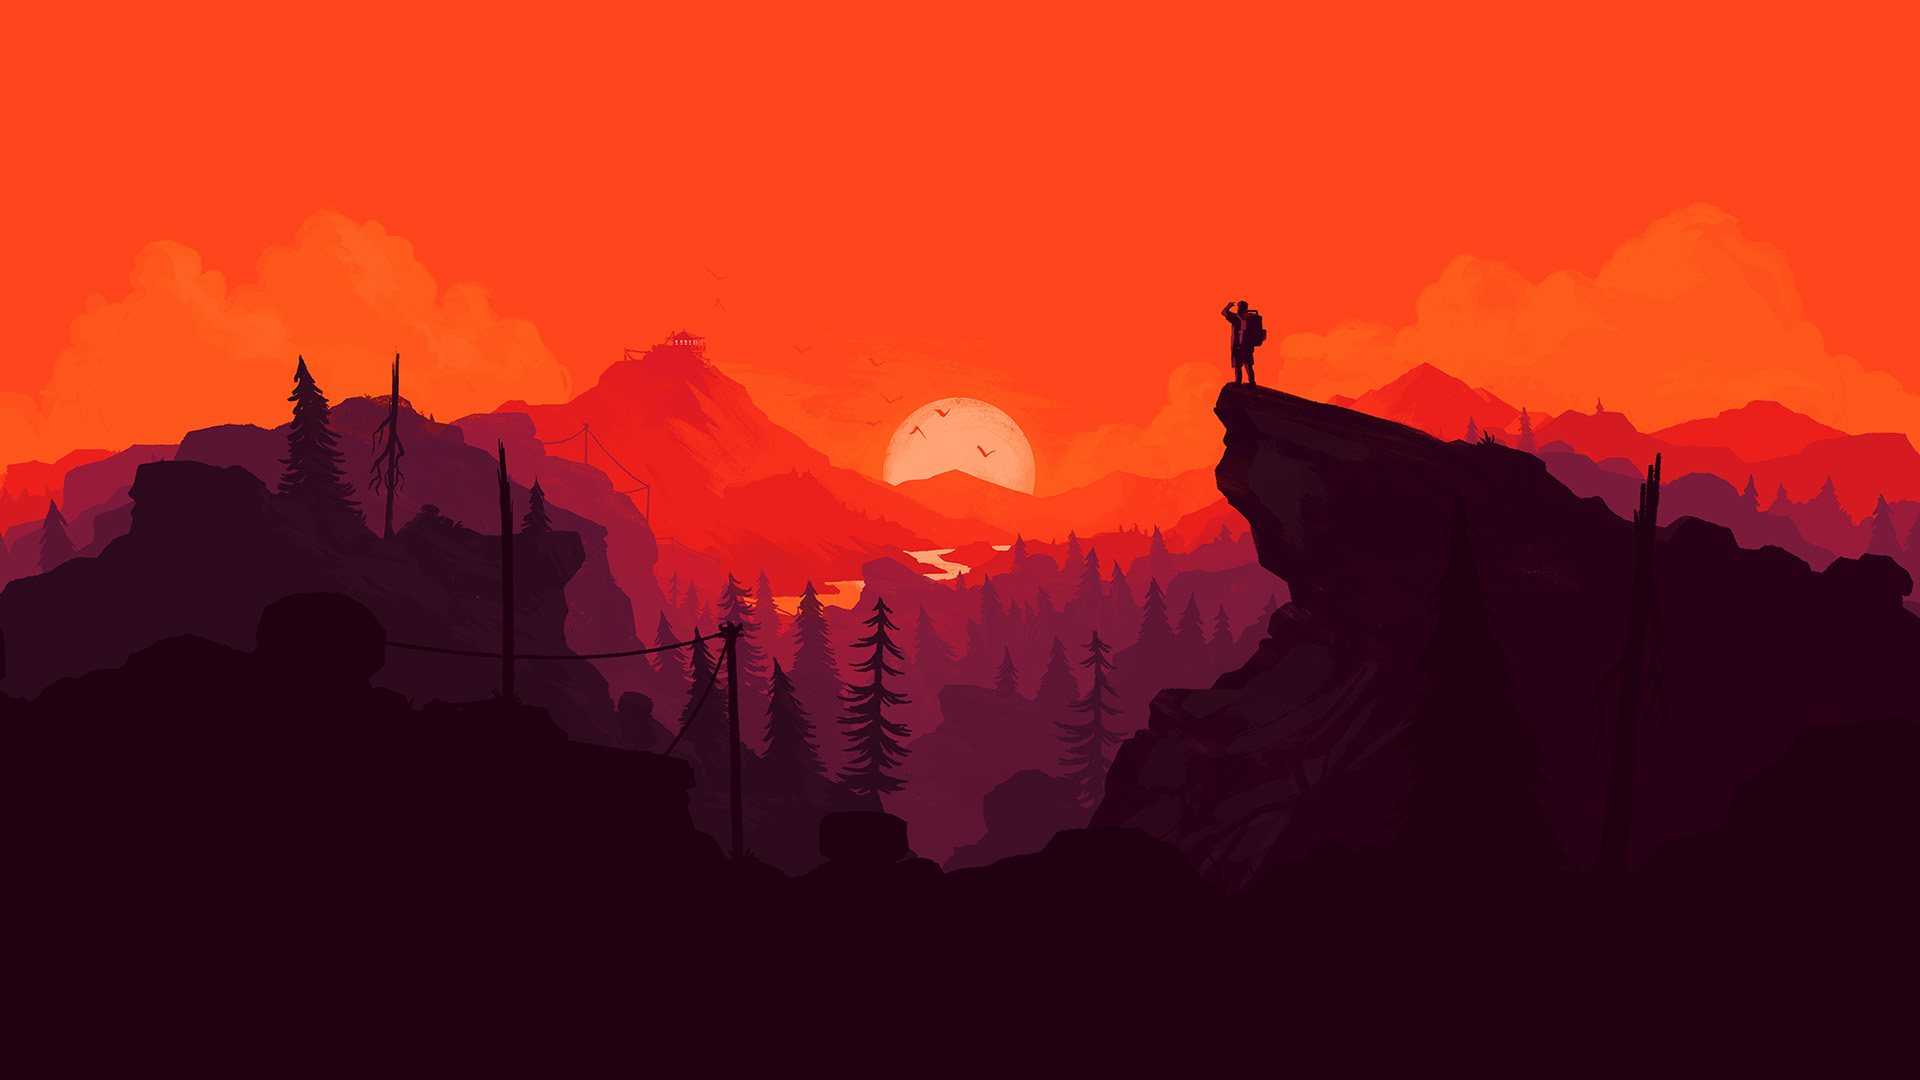 2932x2932 Pubg Android Game 4k Ipad Pro Retina Display Hd: Au35-nature-sunset-simple-minimal-illustration-art-red